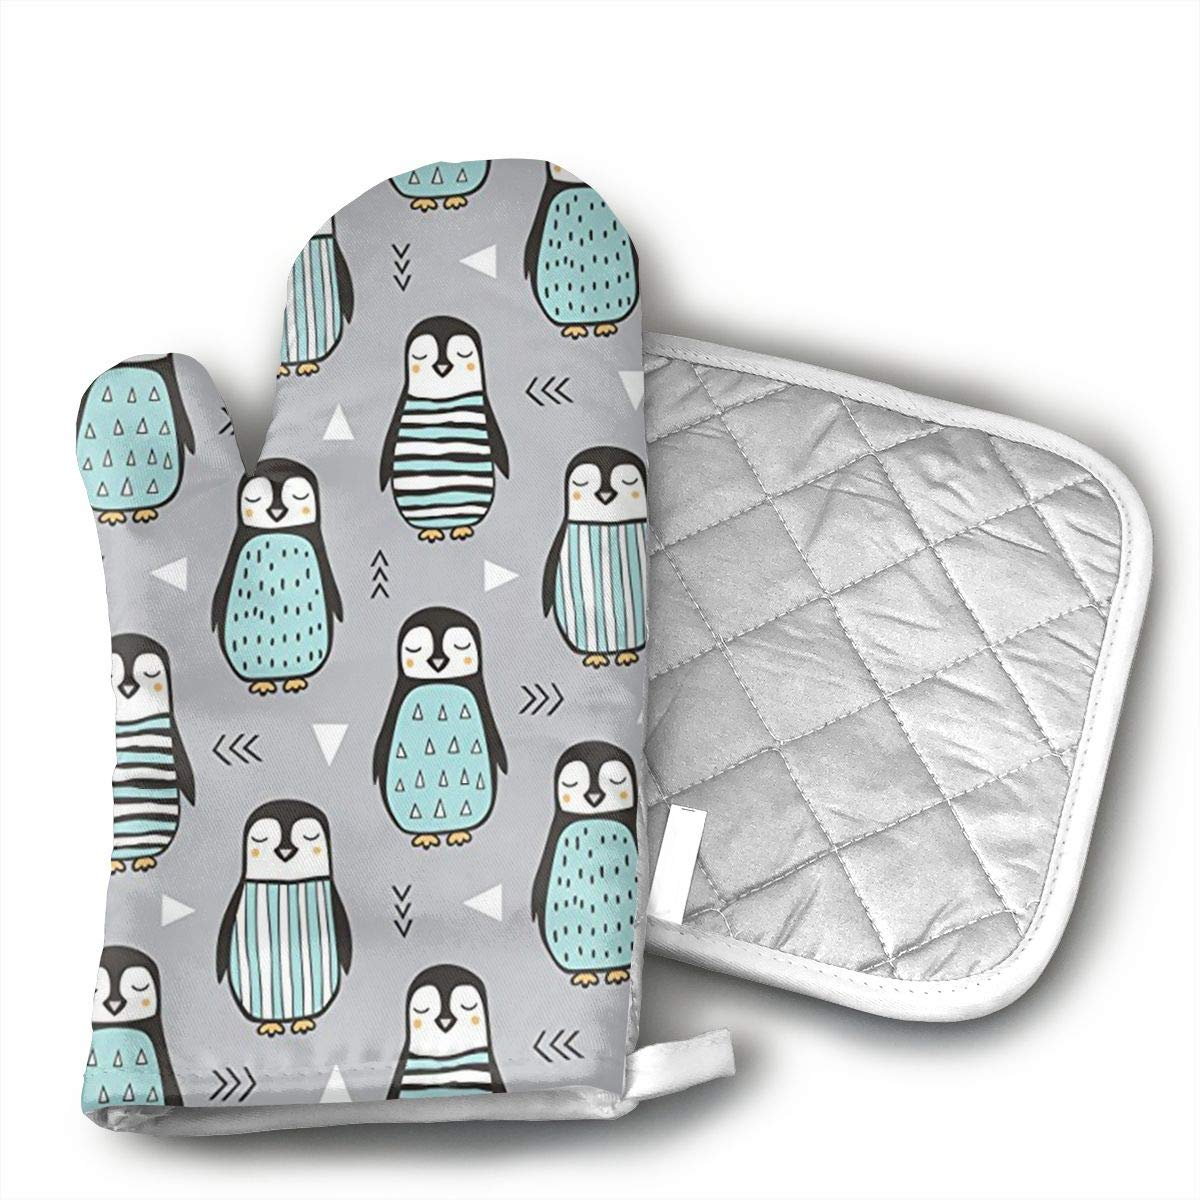 FGXQN Penguins with Sweater Geometric Oven Mitts, with The Heat Resistance of Silicone and Flexibility of Cotton, Recycled Cotton Infill, Terrycloth Lining,